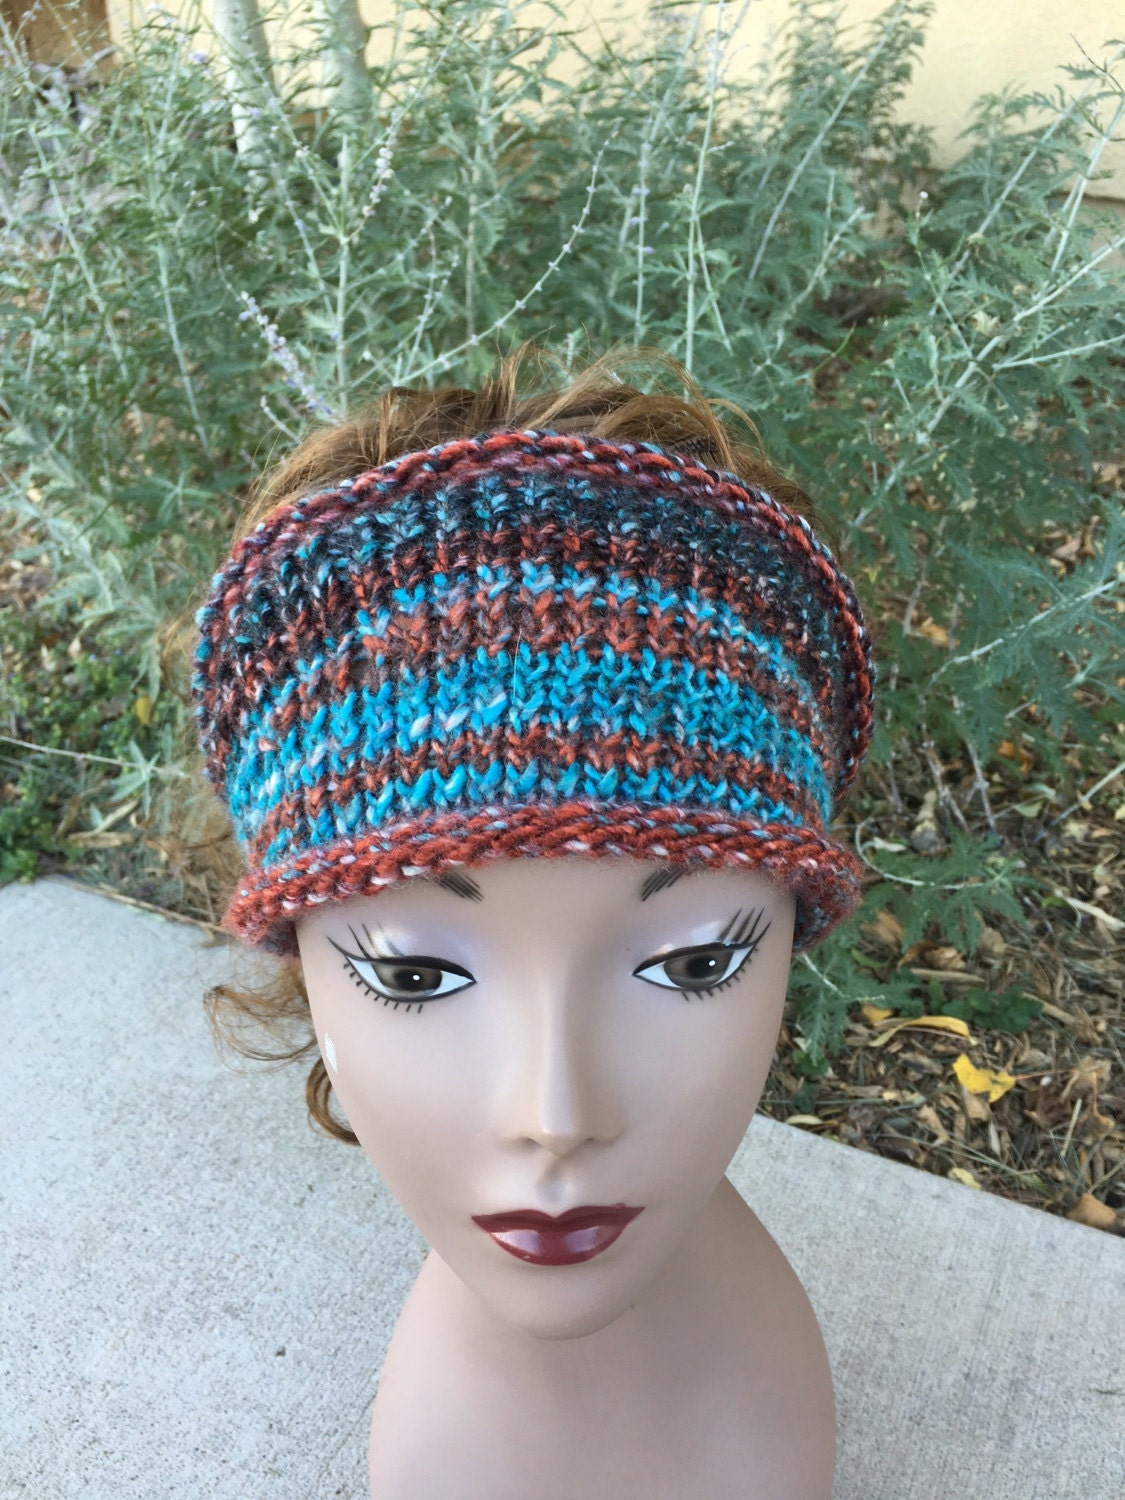 Hippie Headband Knitting Pattern : Boho Headband - a loom knit pattern